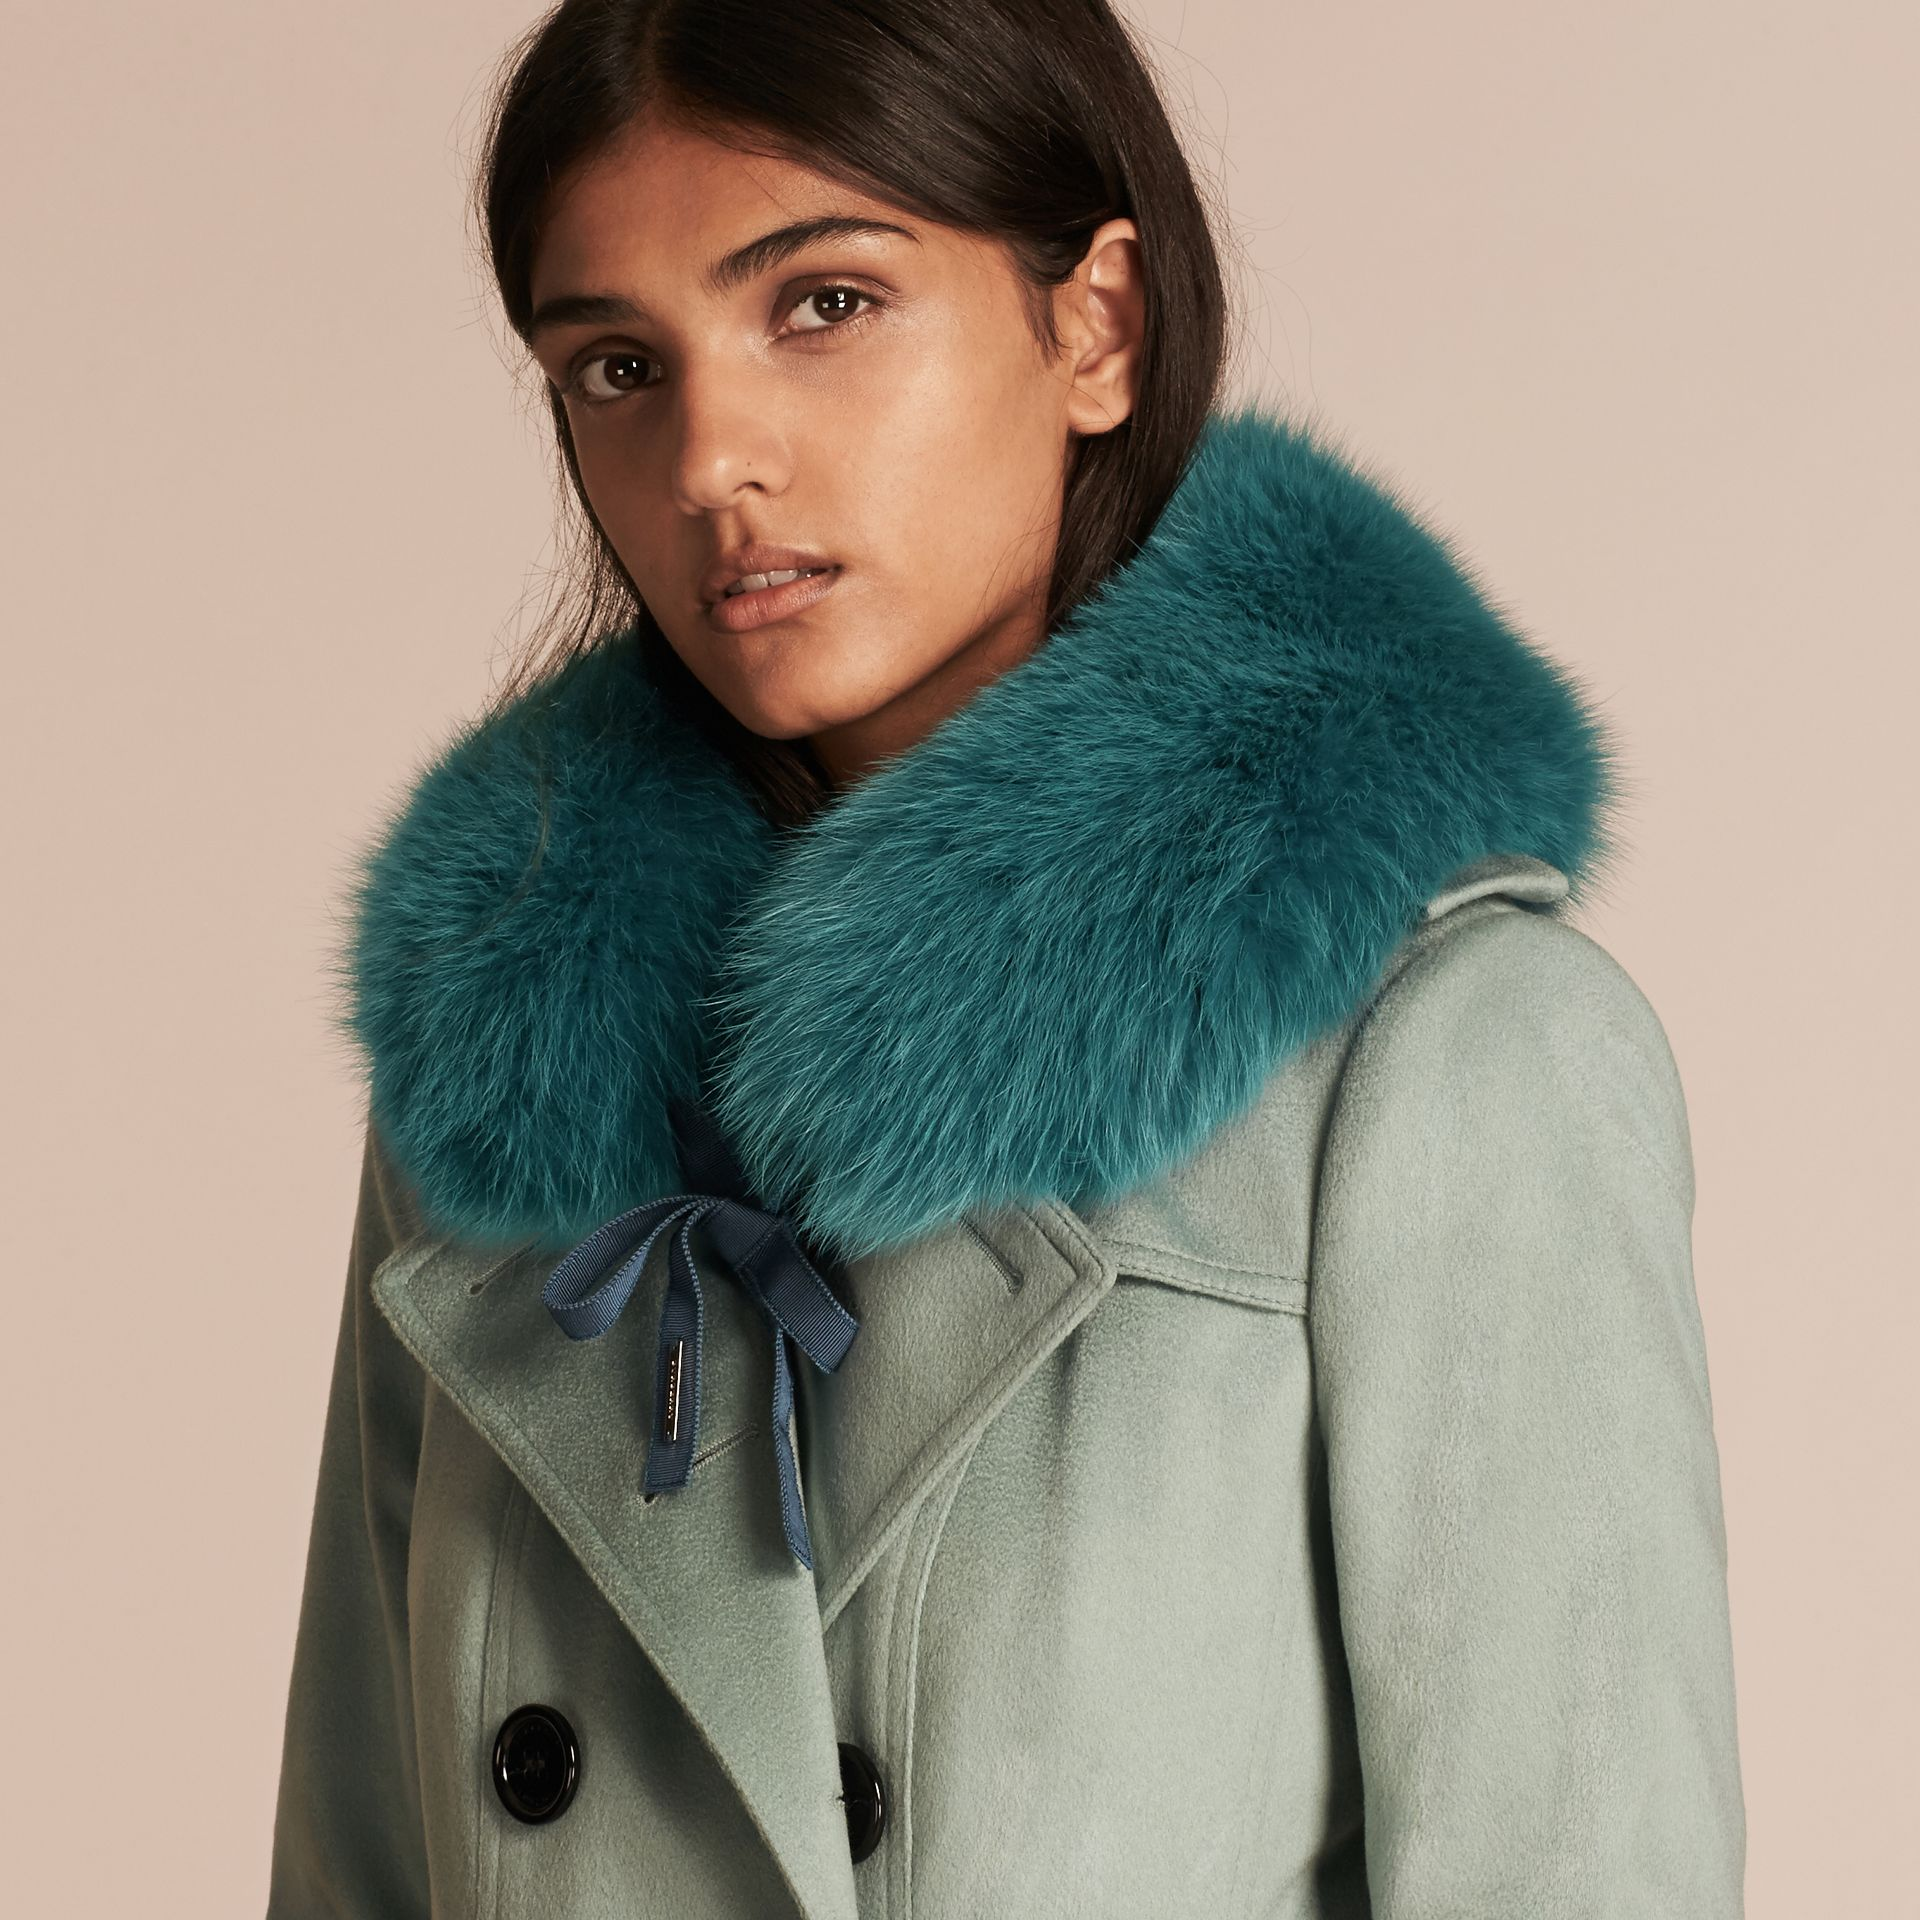 Dark aqua Fox Fur Collar with Check Cashmere Lining Dark Aqua - gallery image 3